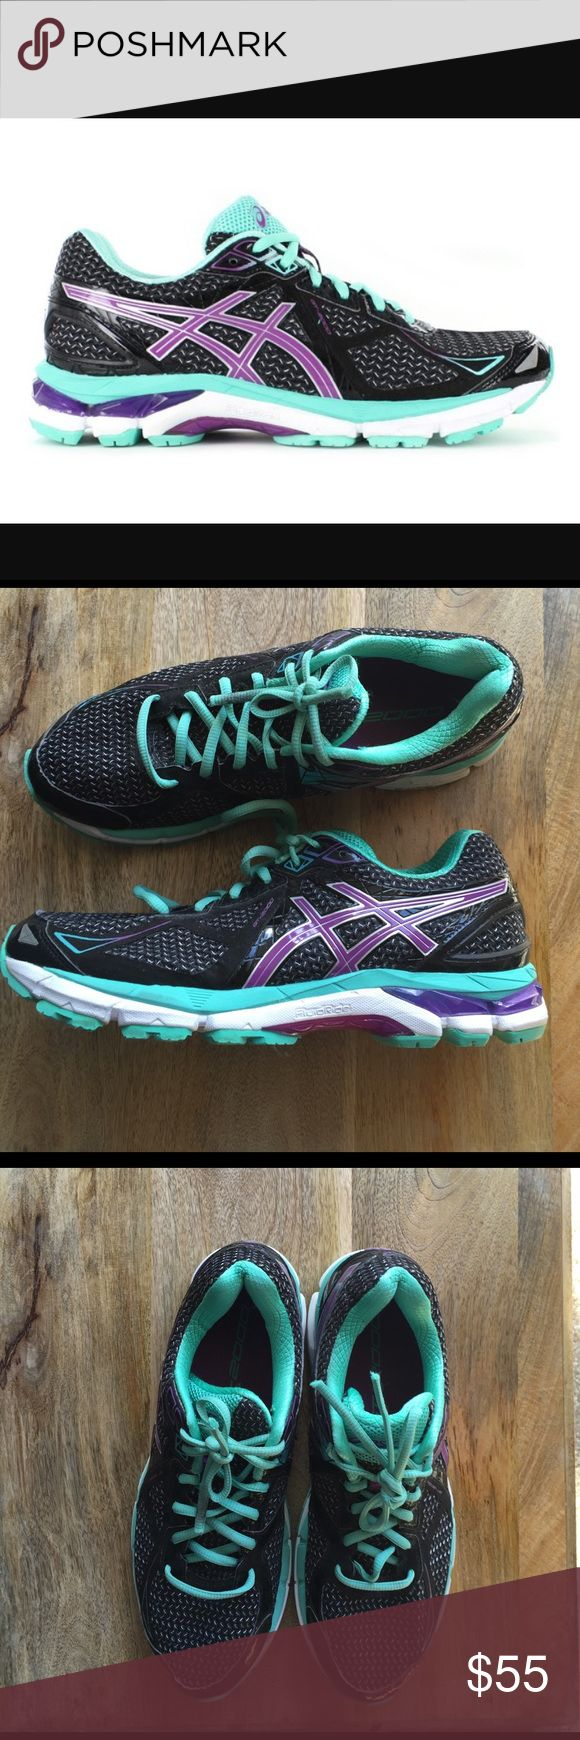 asics GT 2000 # 3 Asics GT 2000 # 3 runing shoes the laces are damaged after that excellent condition Like new 🌴🌼☀️ Asics Shoes Athletic Shoes